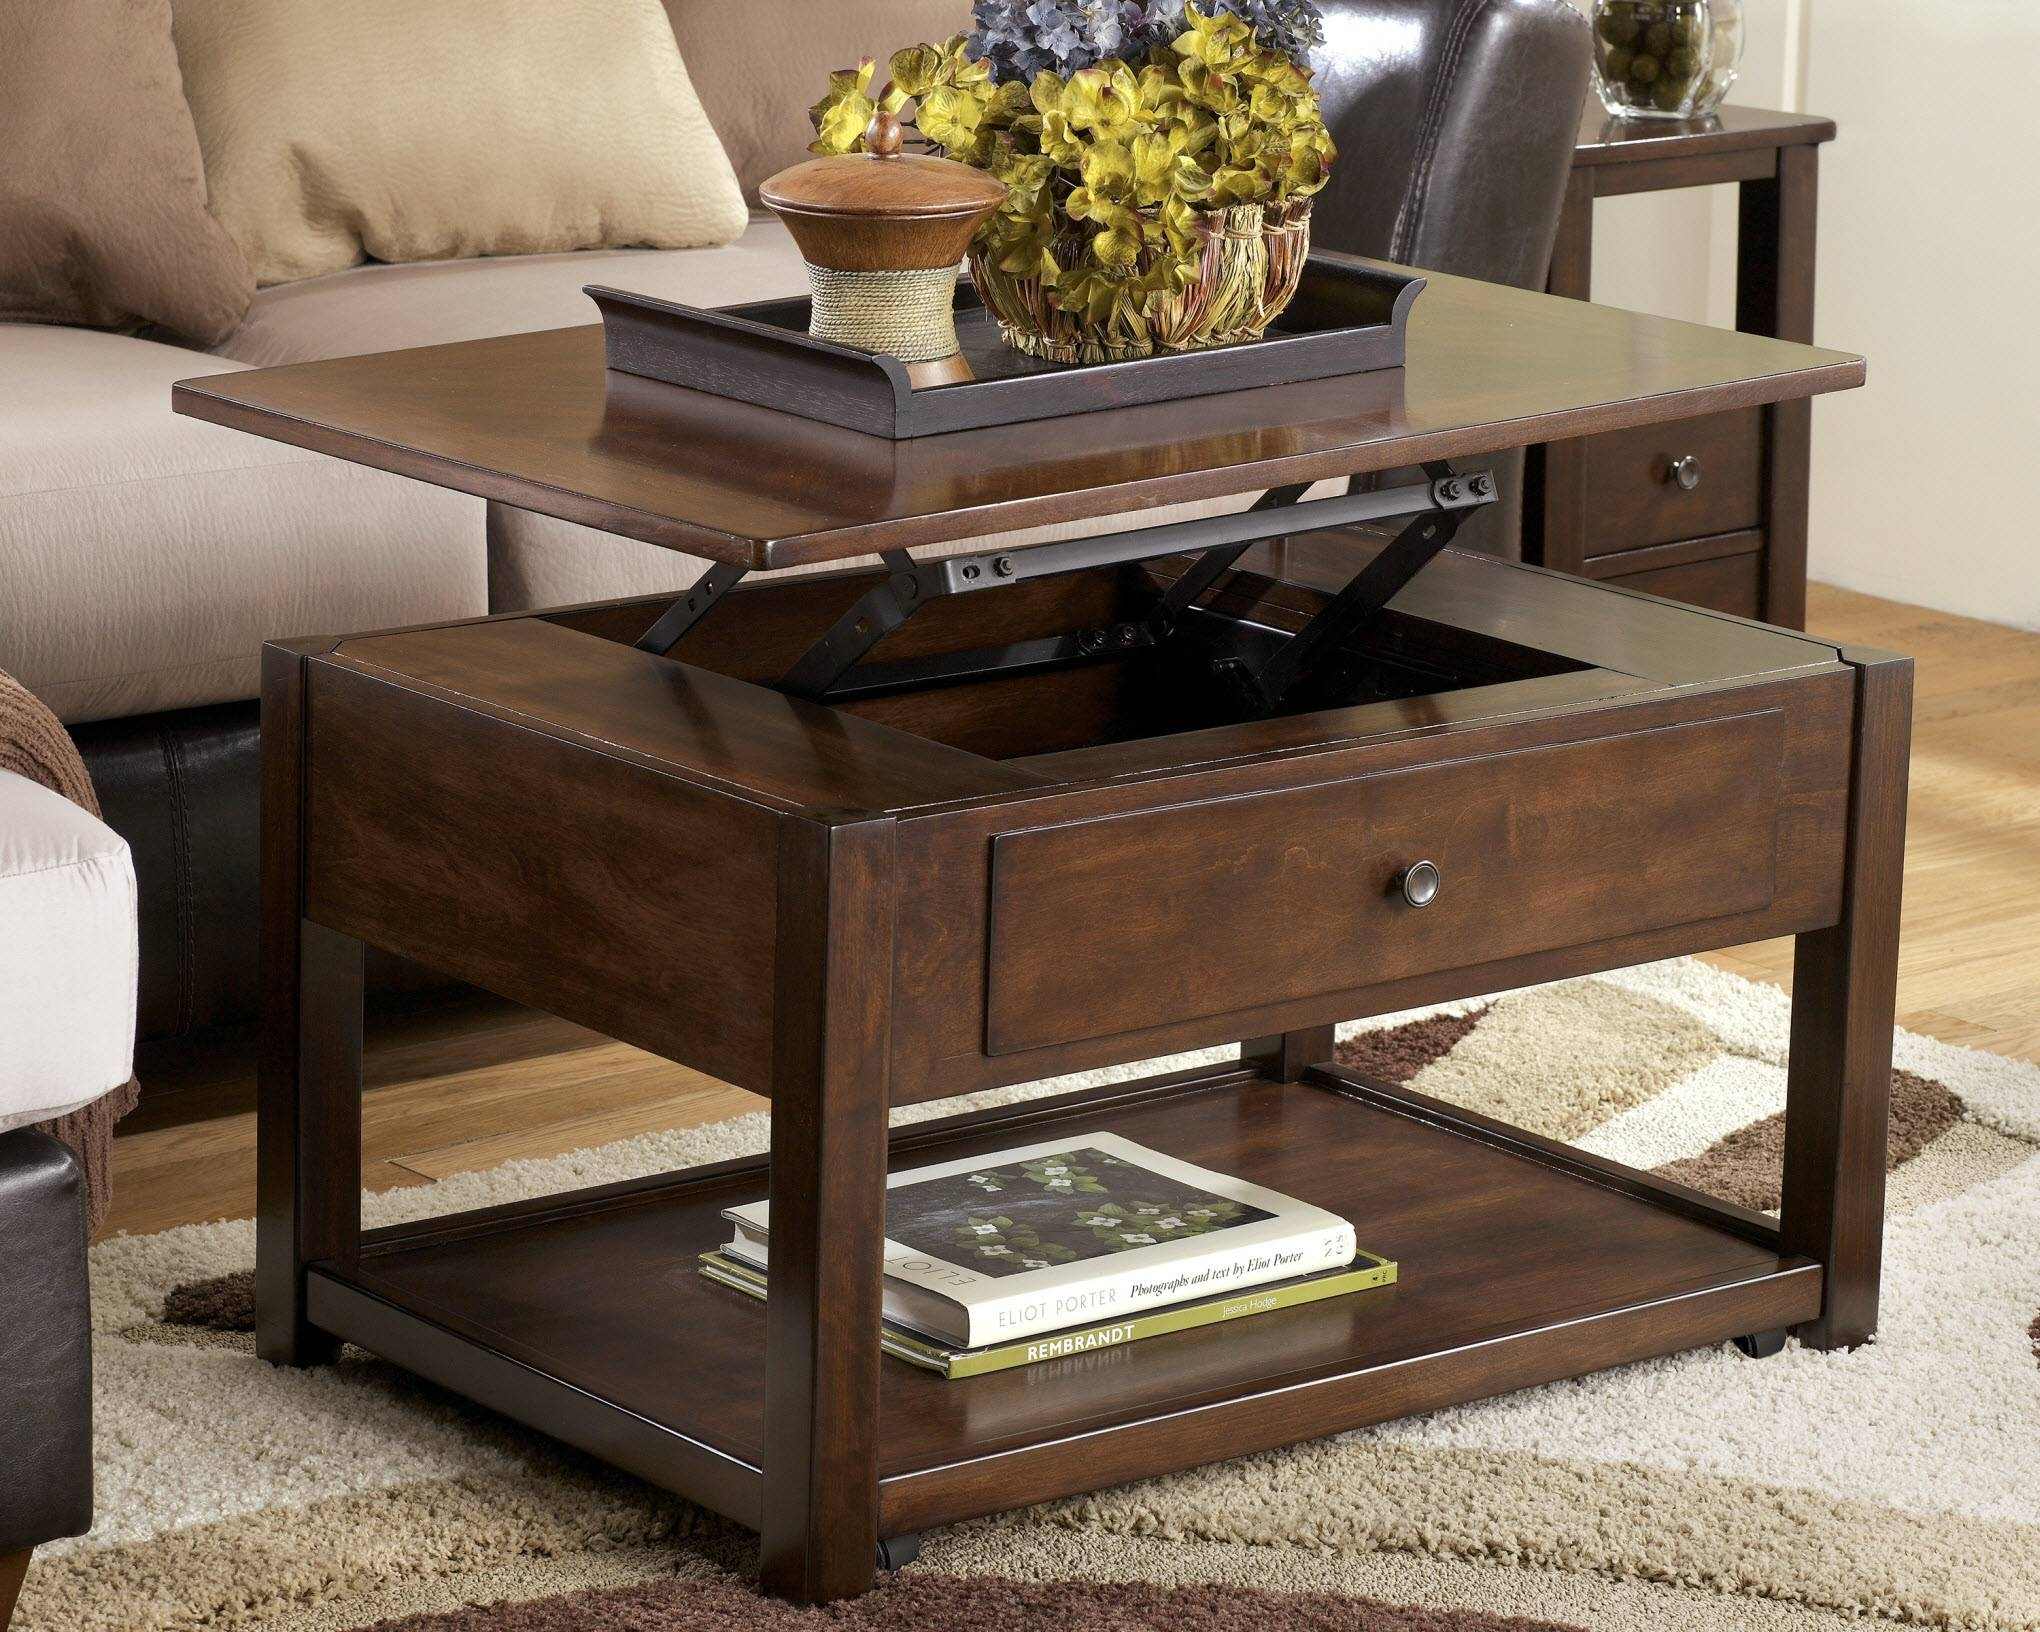 Coffee Table: Wonderful Small Coffee Table With Storage Design In Round Coffee Tables With Storages (Photo 30 of 30)